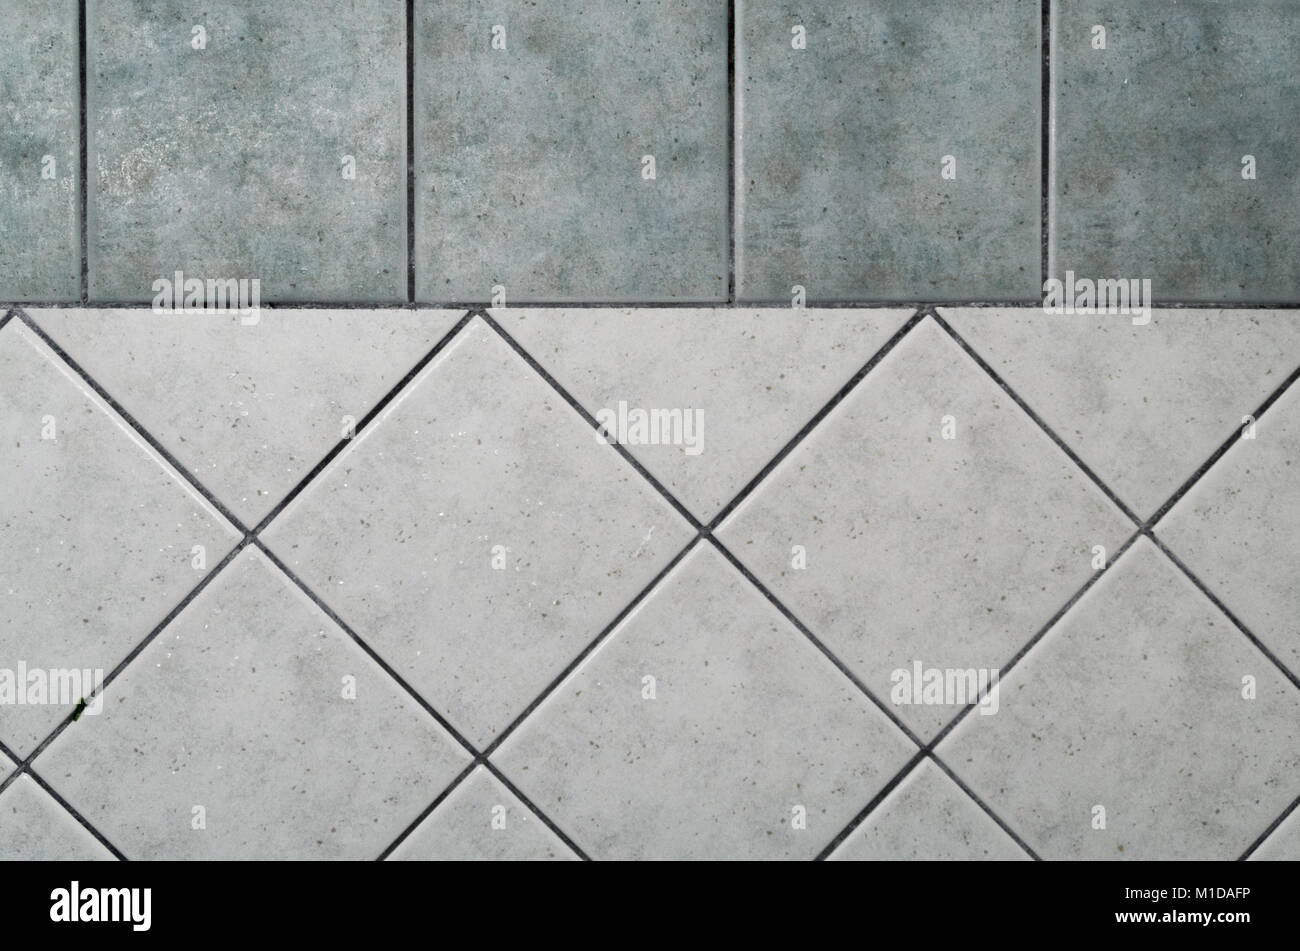 Tiles Texture Bathroom Stock Photos & Tiles Texture Bathroom Stock ...